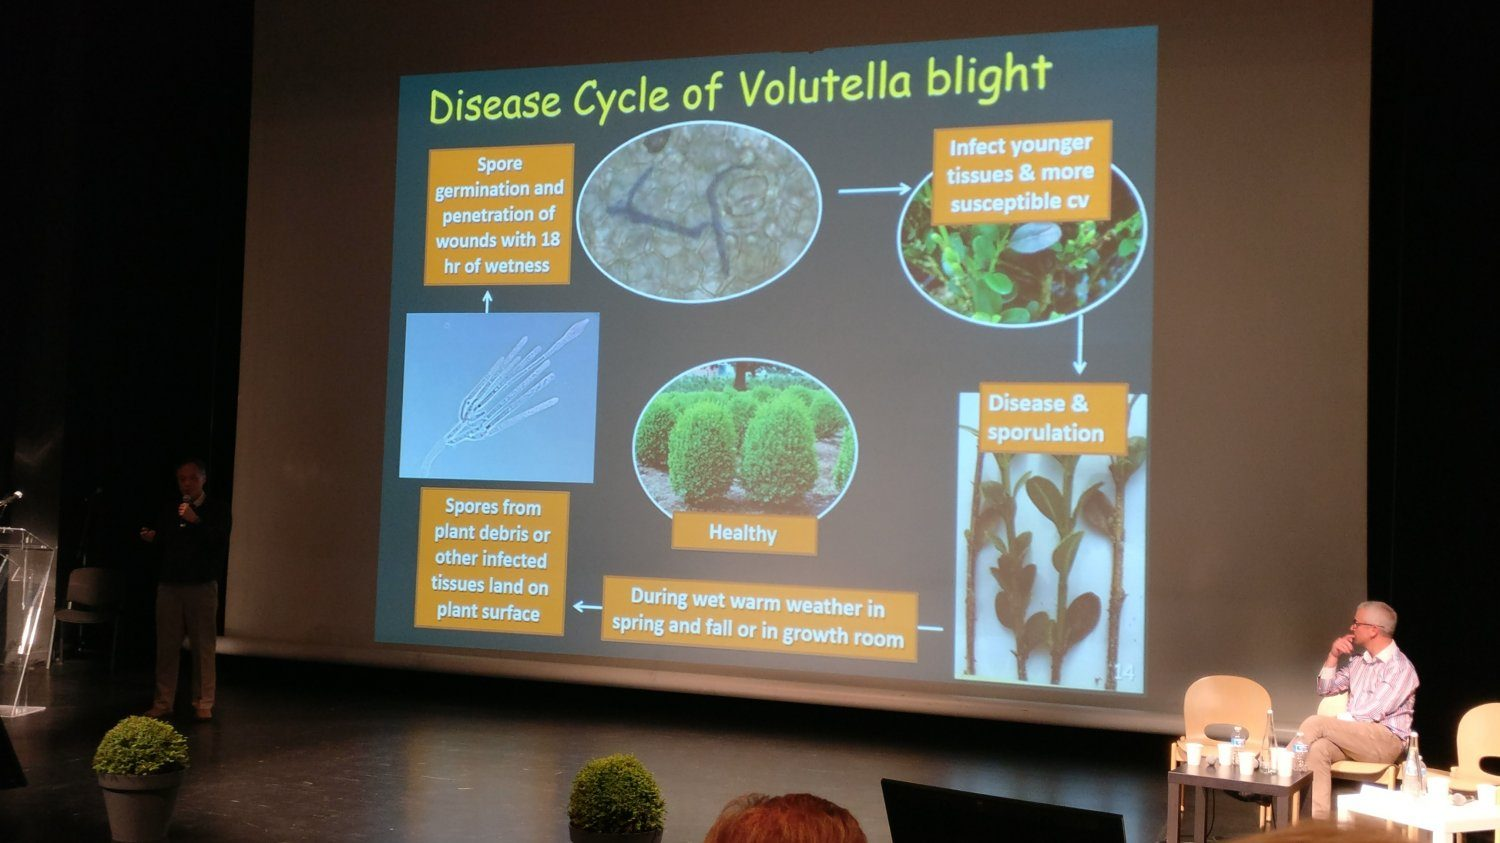 Tom Hsiang explaining the disease cycle of Volutella blight